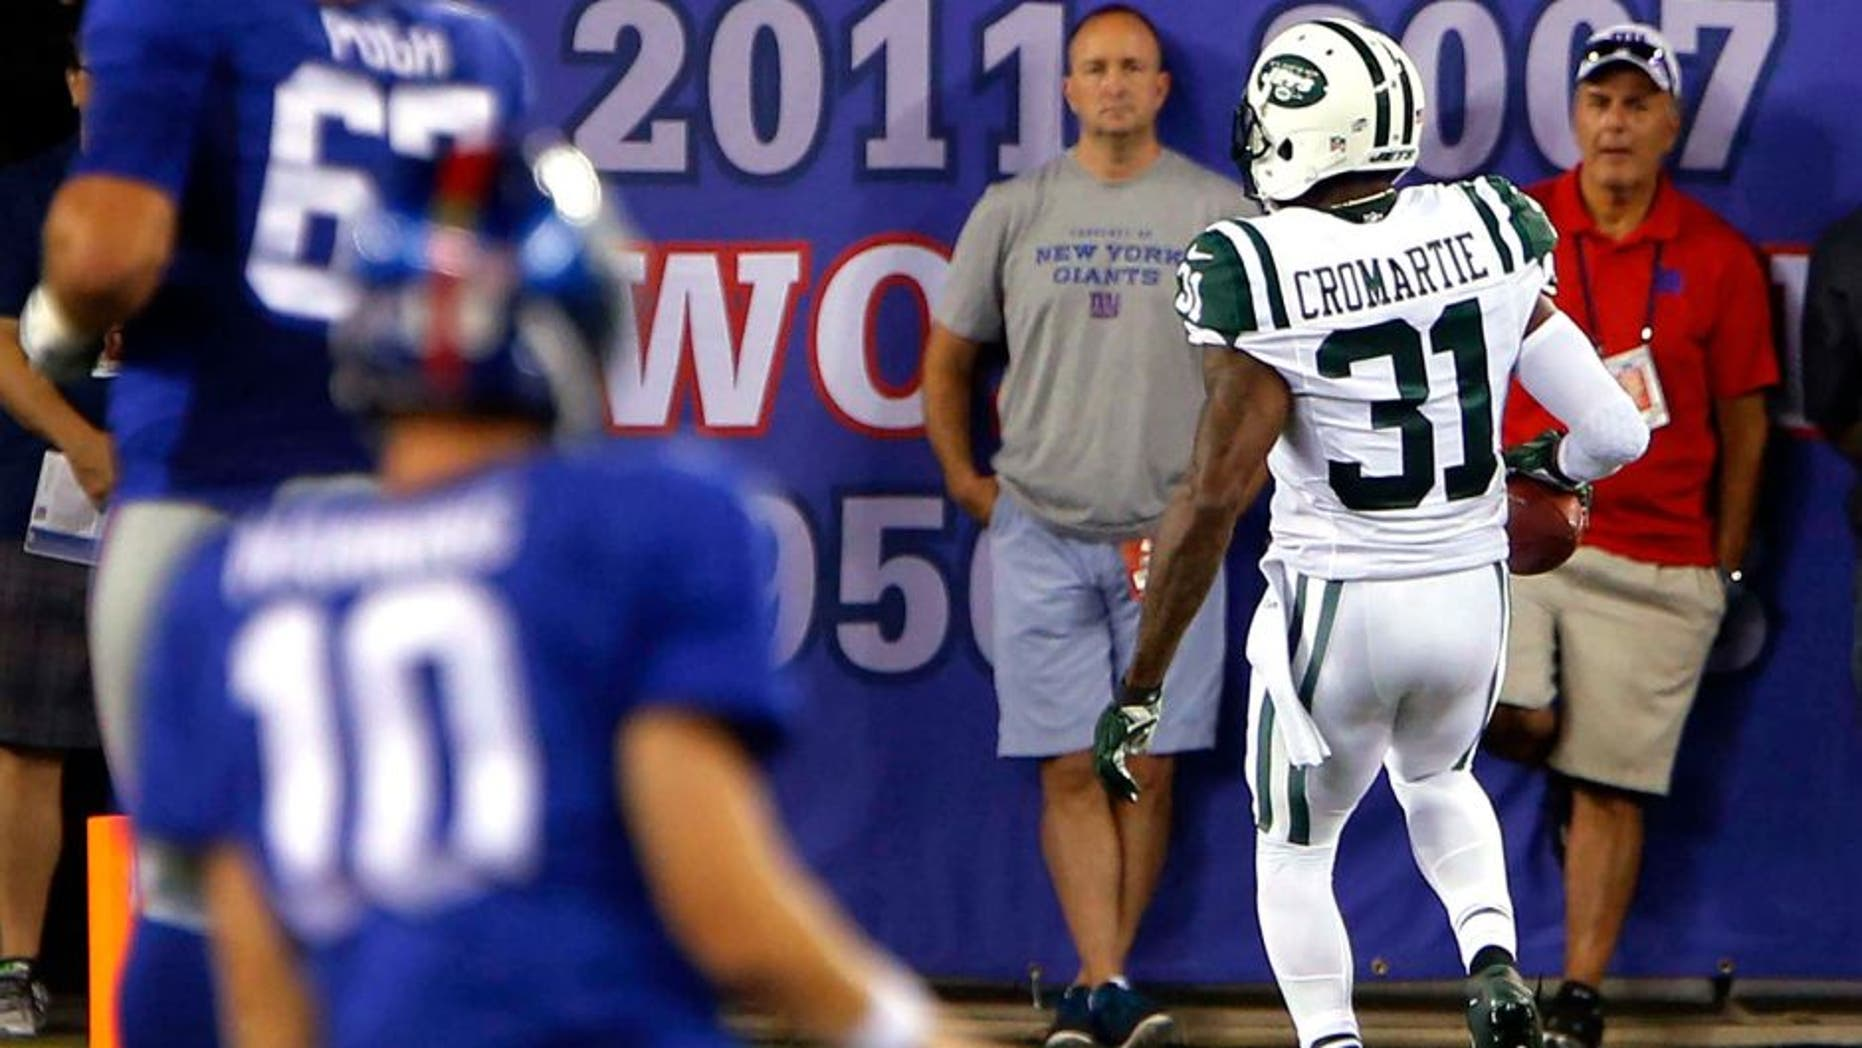 Aug 29, 2015; East Rutherford, NJ, USA; New York Giants quarterback Eli Manning (10) watches New York Jets defensive back Antonio Cromartie (31) score a touchdown after intercepting his pass during the first half at MetLife Stadium. Mandatory Credit: Noah K. Murray-USA TODAY Sports